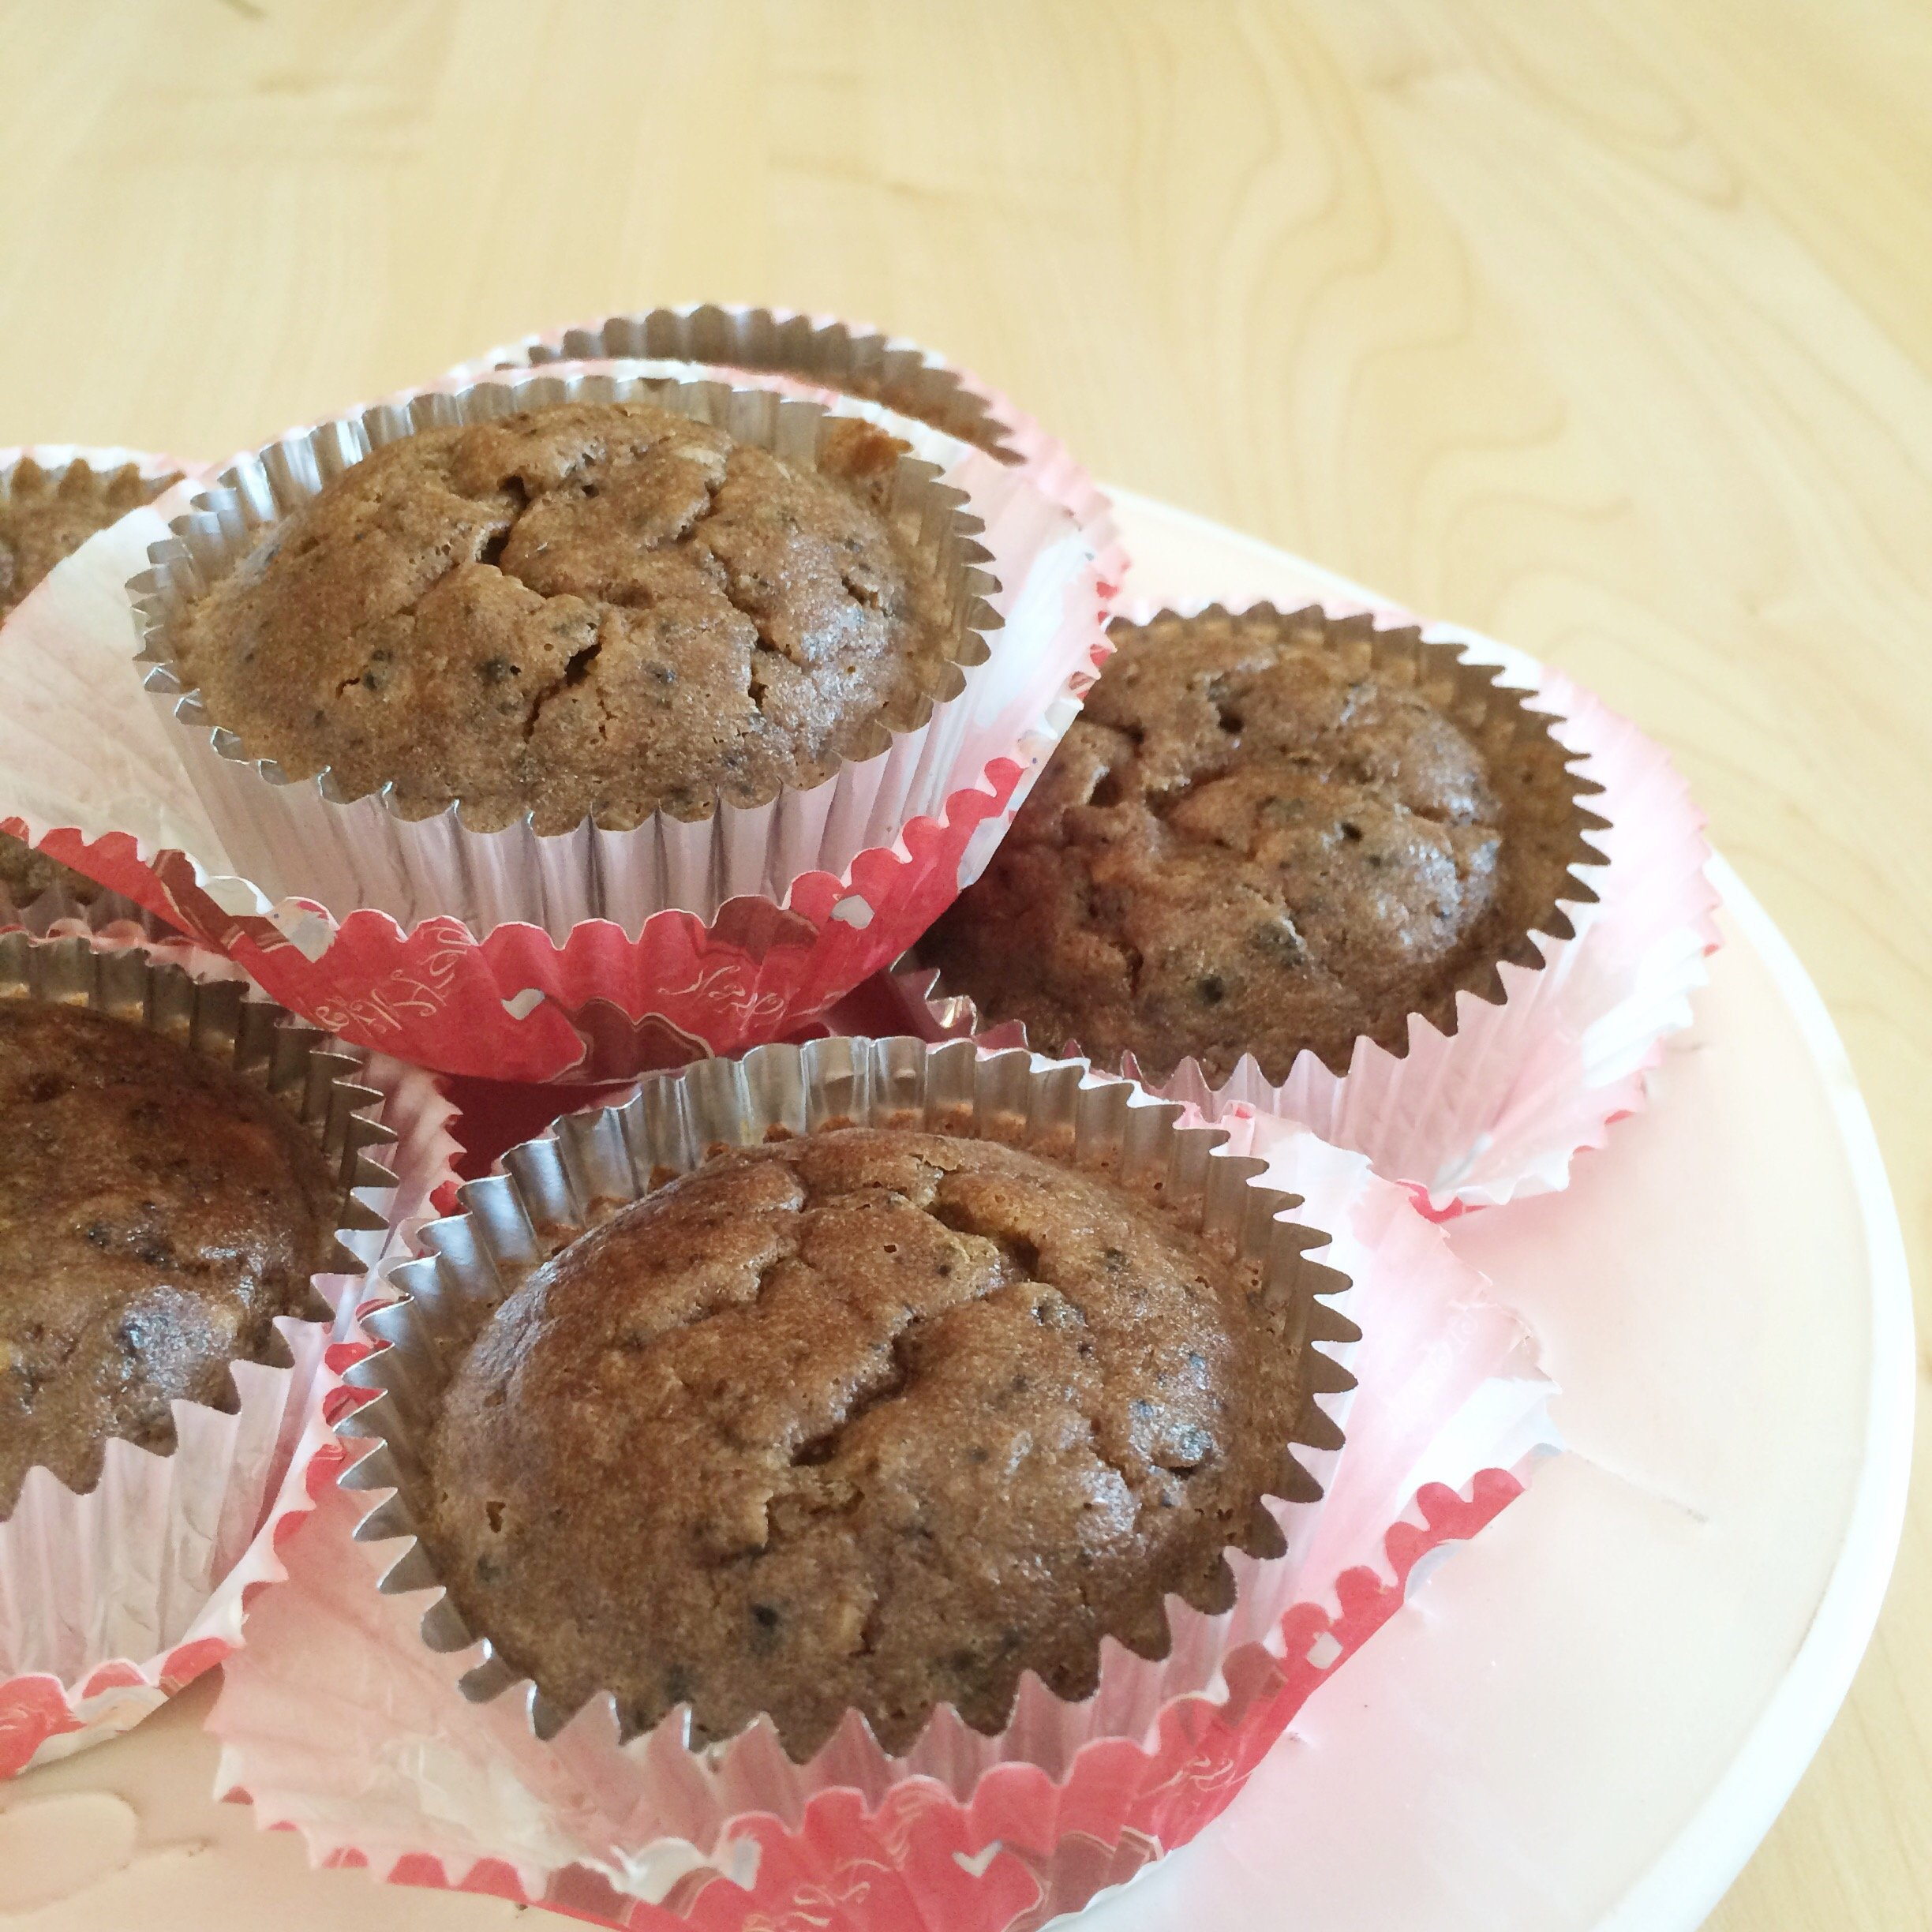 Peppermint Chocolate Low Carb Cupcakes | A delicious and easy holiday treat for your LCHF, atkins and sugar free friends!